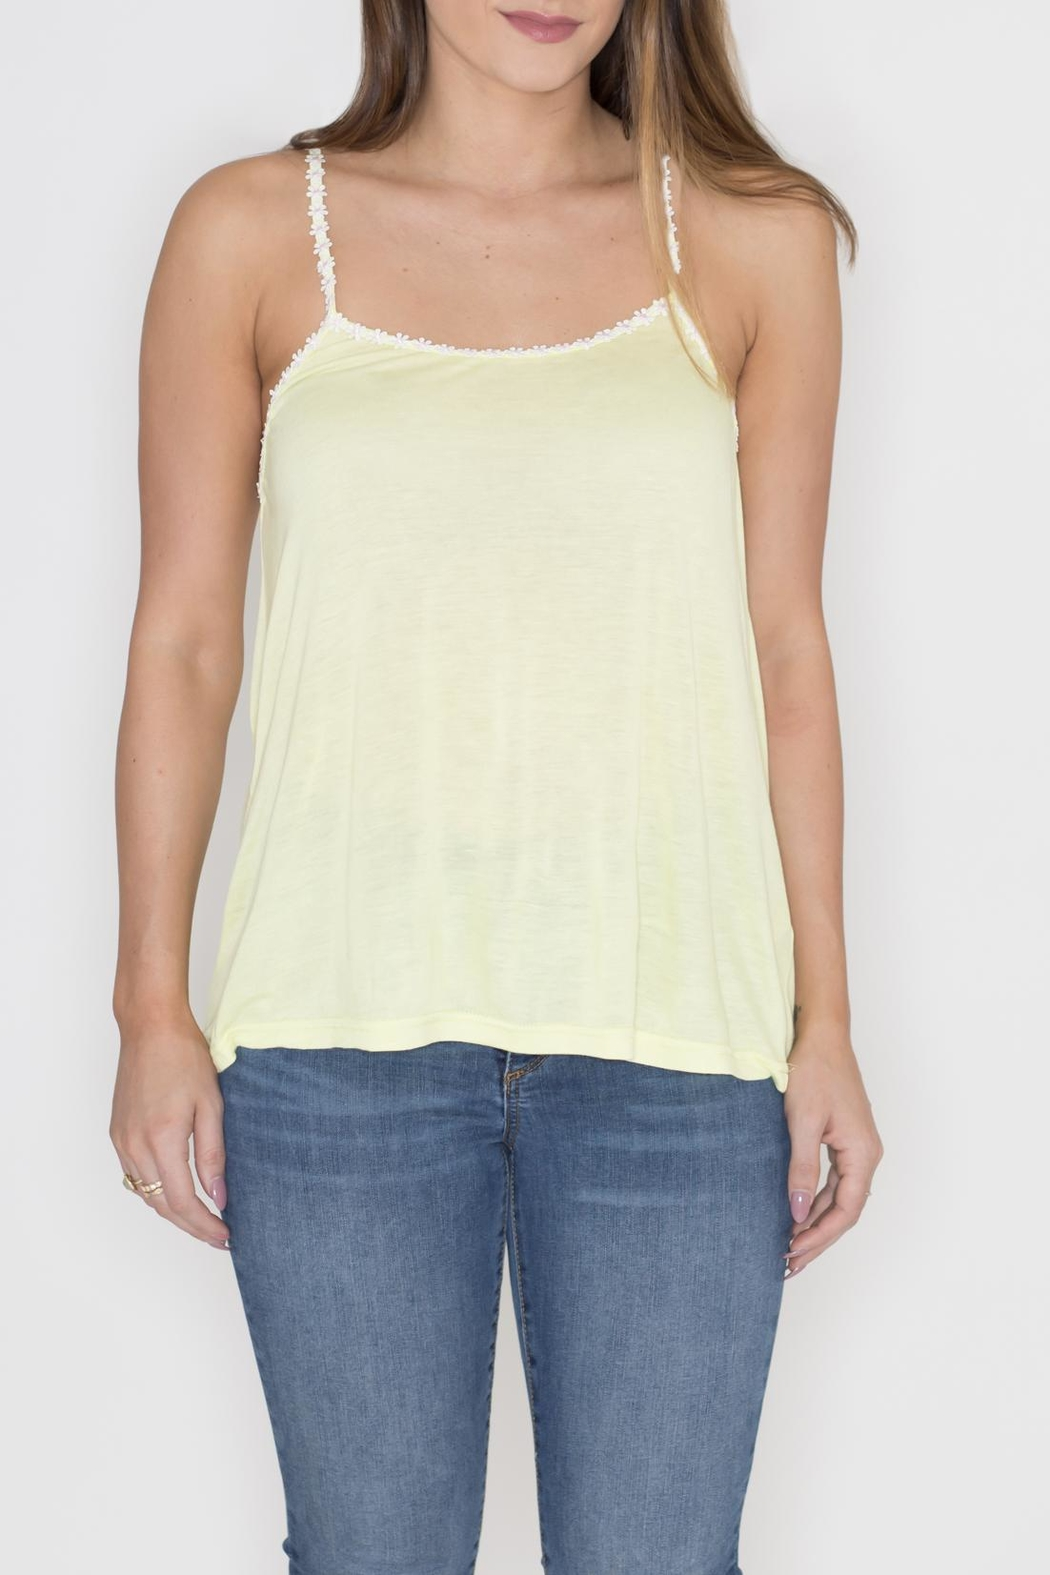 Very J Daisy Trim Tank Top - Main Image